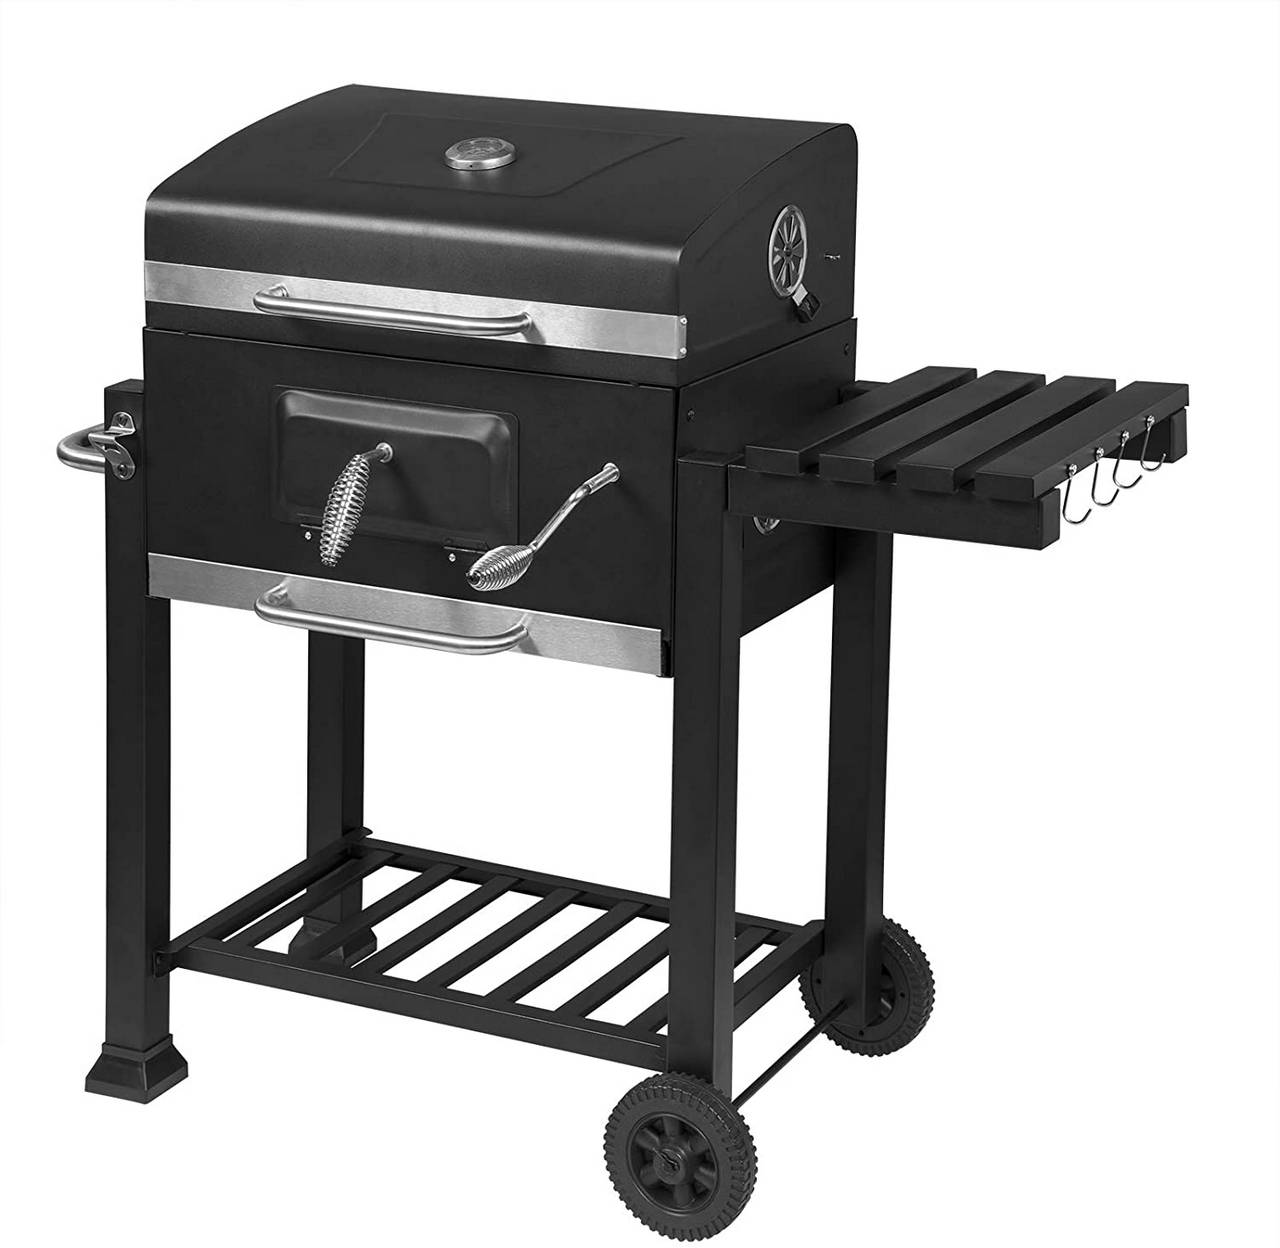 Charcoal grill with lid, barbecue grill for parties, black Wand